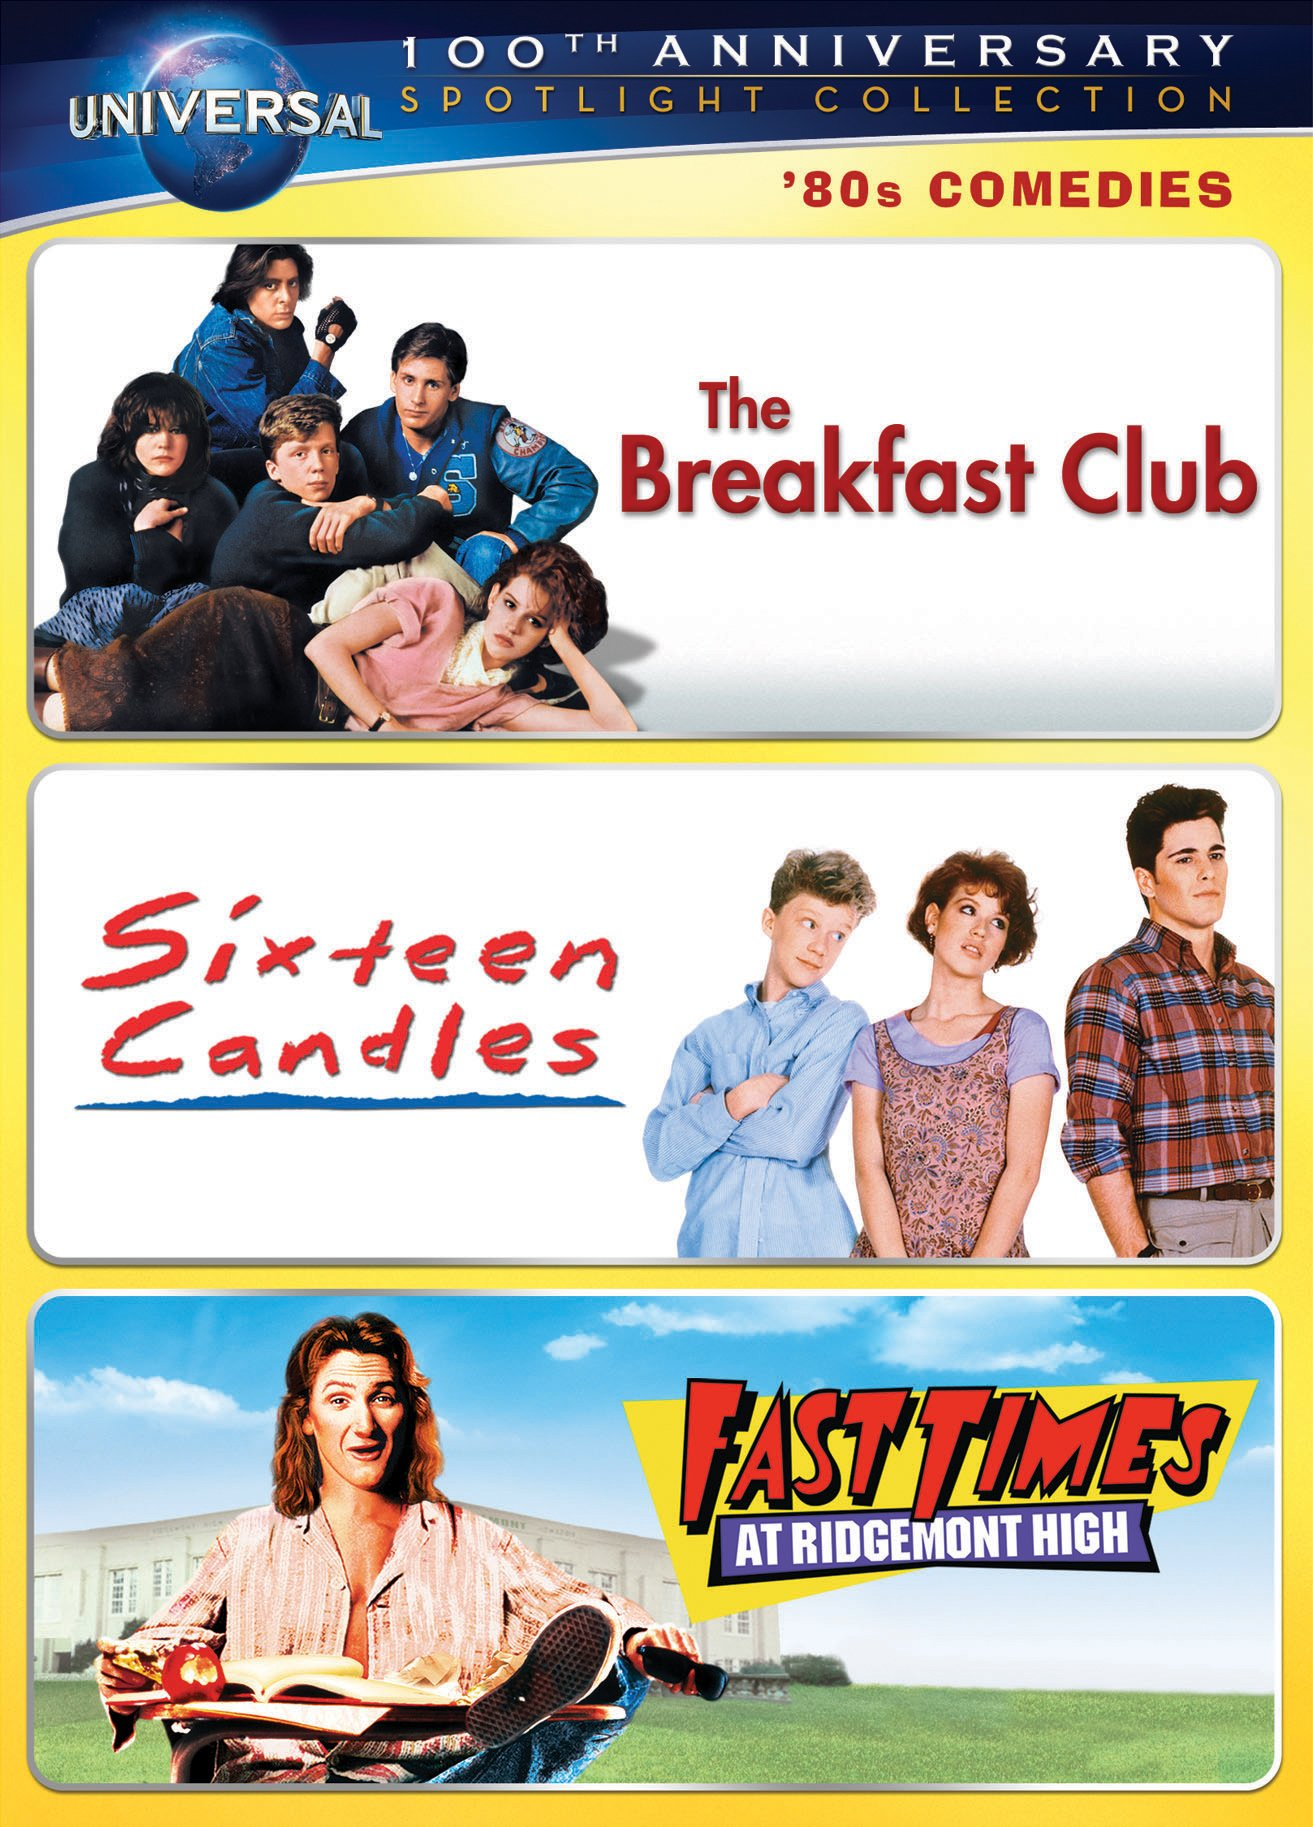 '80s Comedies Spotlight Collection [The Breakfast Club, Sixteen Candles, Fast Times at Ridgemont High] (Universal's 100th Anniversary) by Universal Studios Home Entertainment